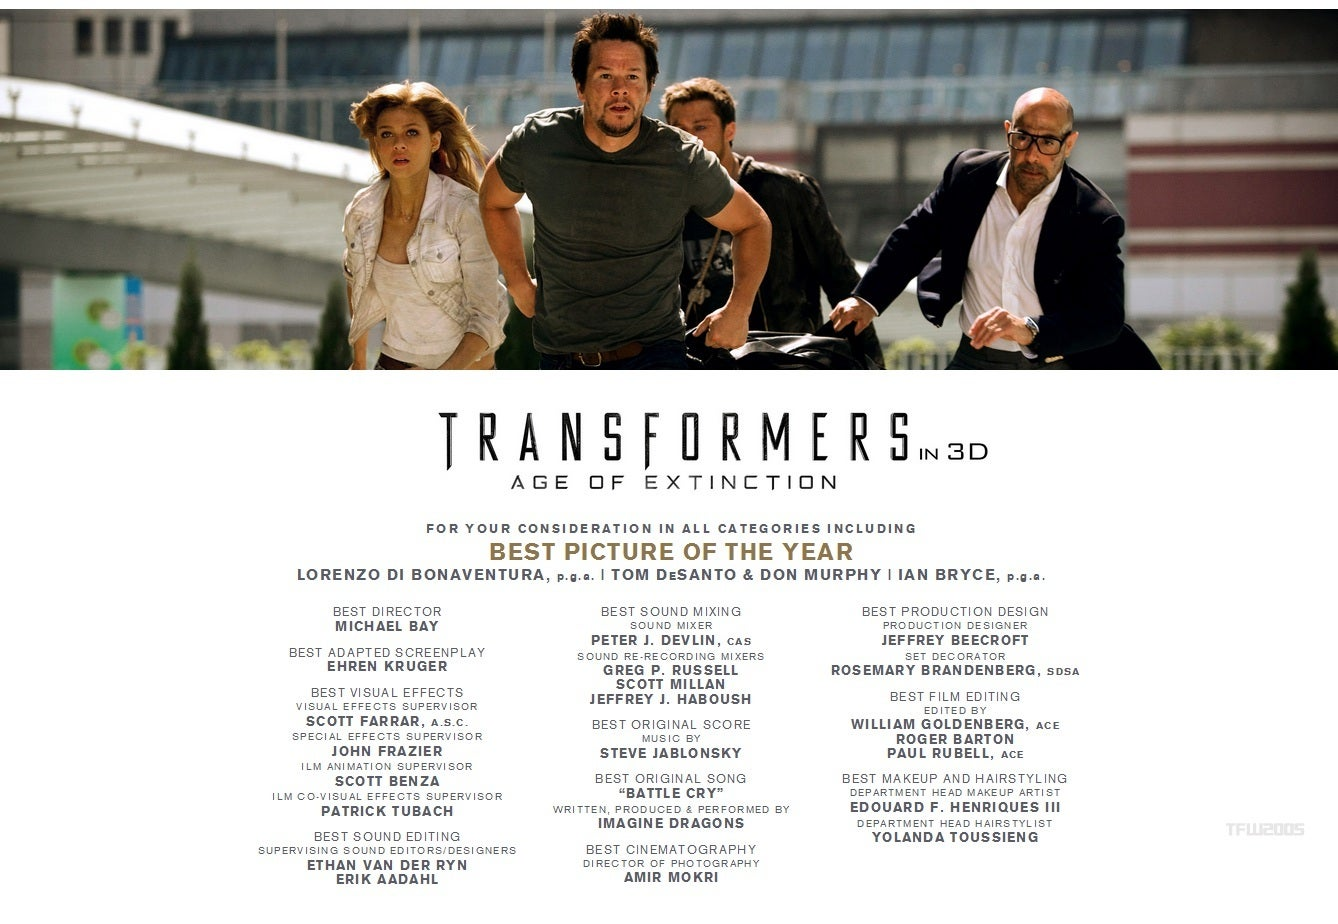 Transformers-Age-Of-Extinction-2014-Awards-For-Your-Consideration 1417936610